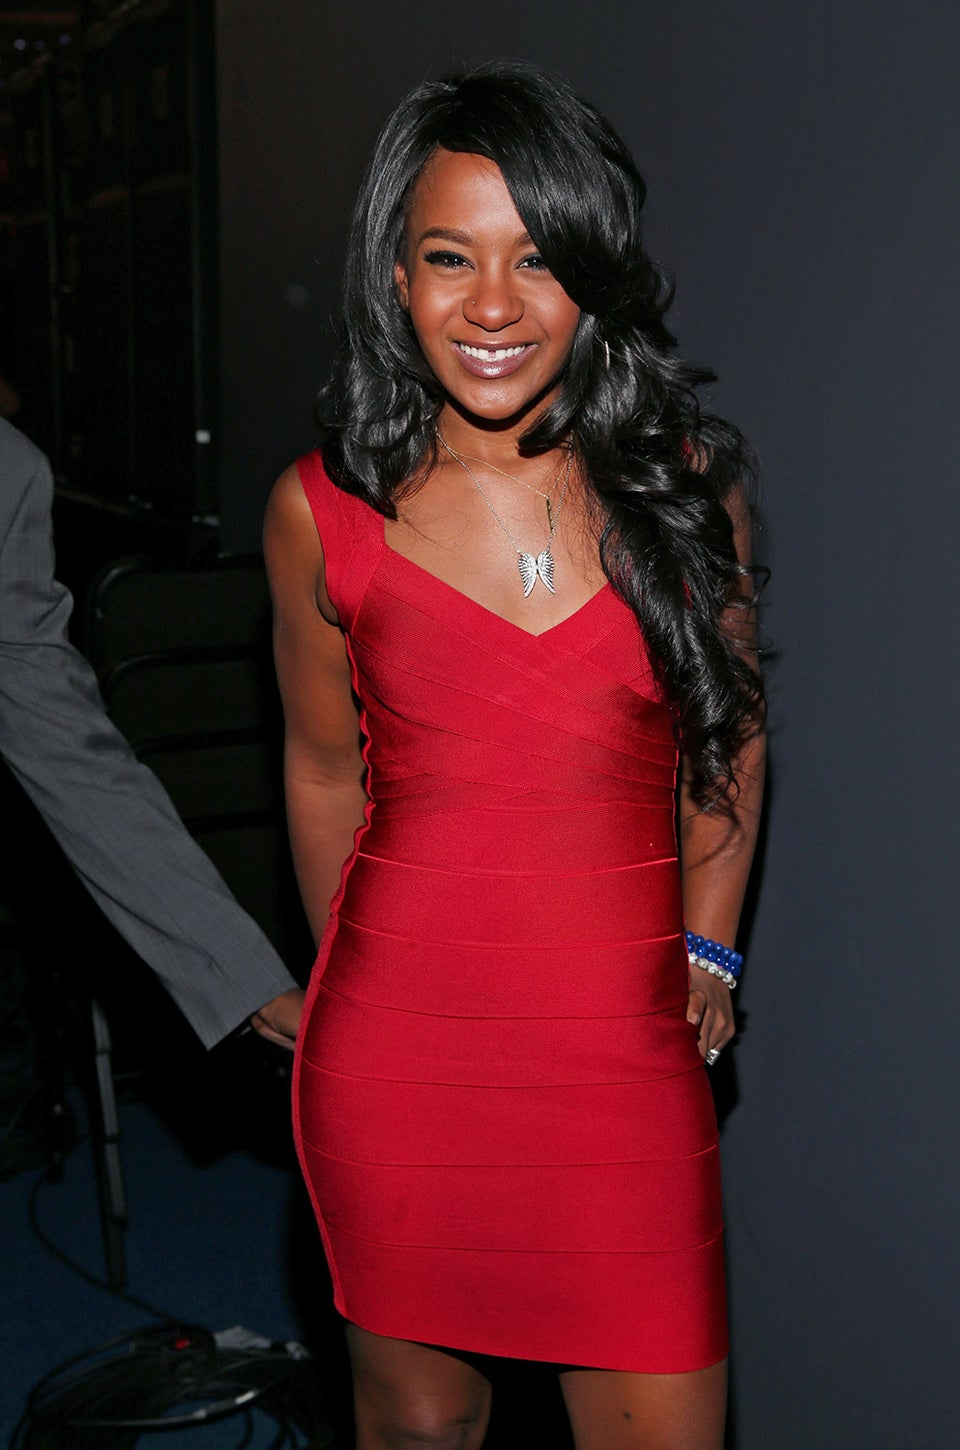 Woman Arrested for Impersonating a Nurse at Bobbi Kristina Brown's Hospice Facility